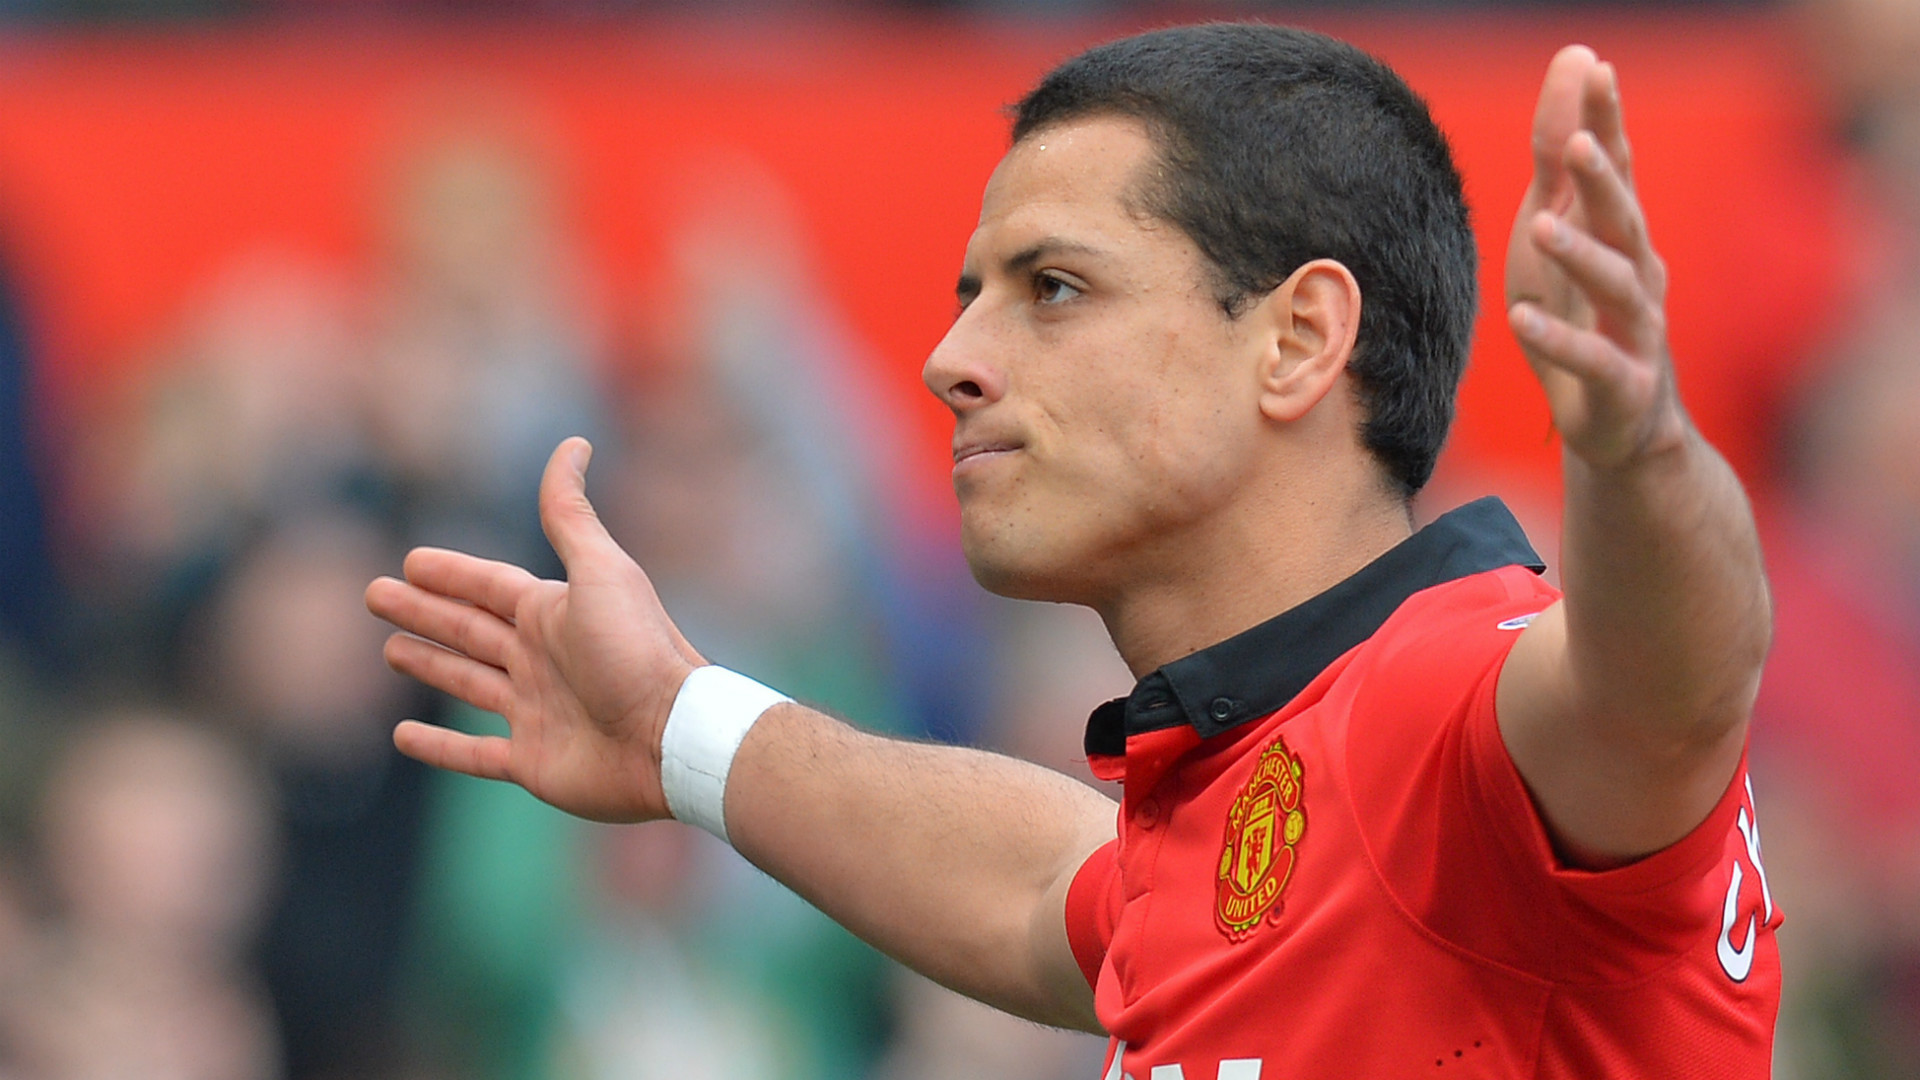 Chicharito reflects on 'bittersweet' Man Utd spell & refuses to rule out return to Europe from MLS